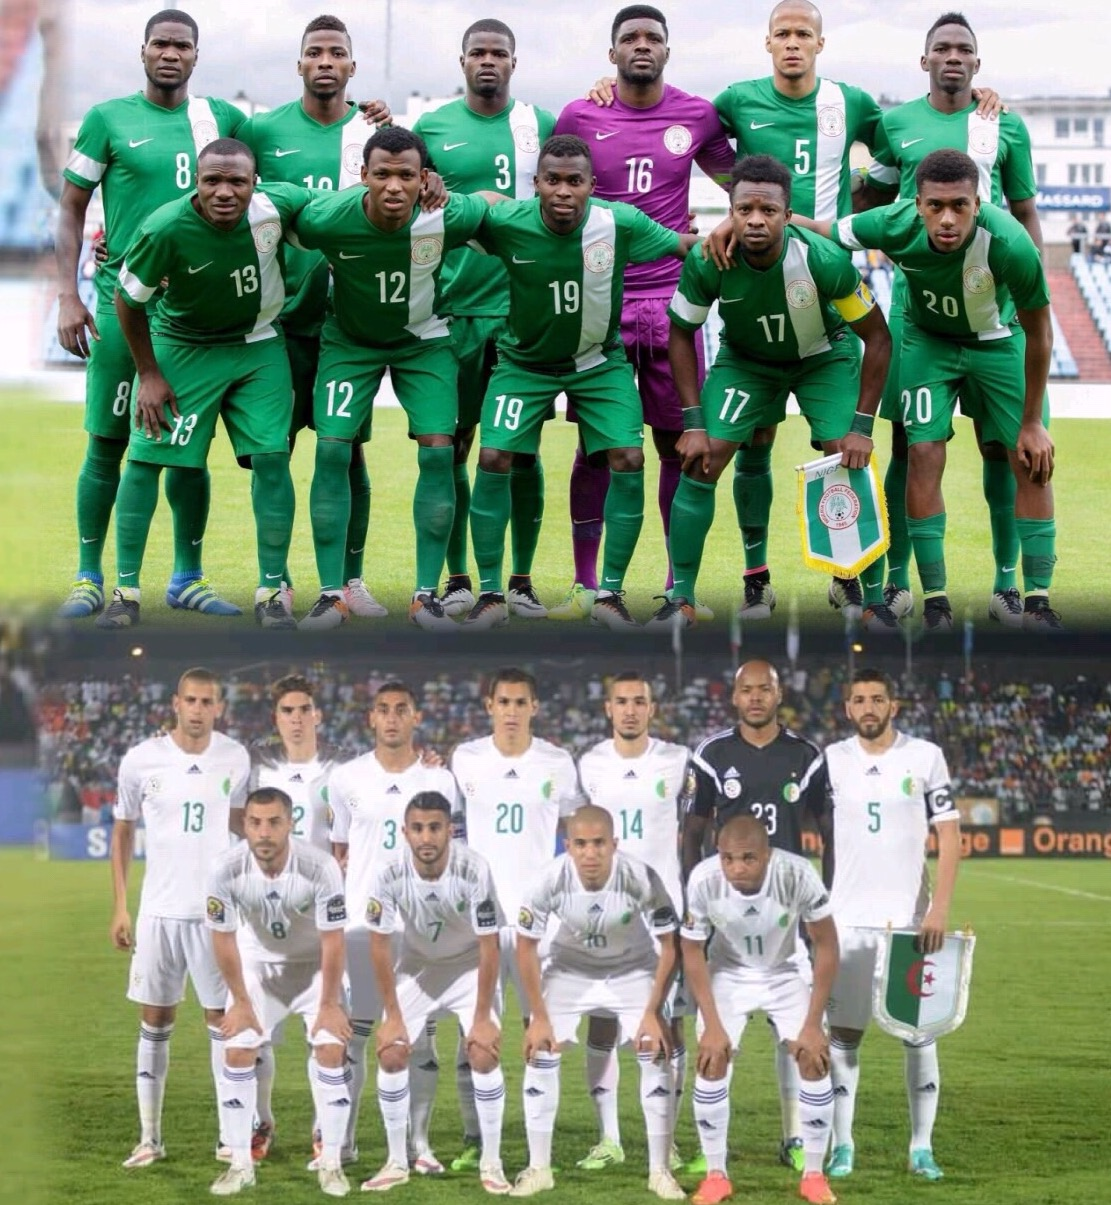 Odegbami: The War In Uyo – The Super Eagles Versus The Desert Foxes!